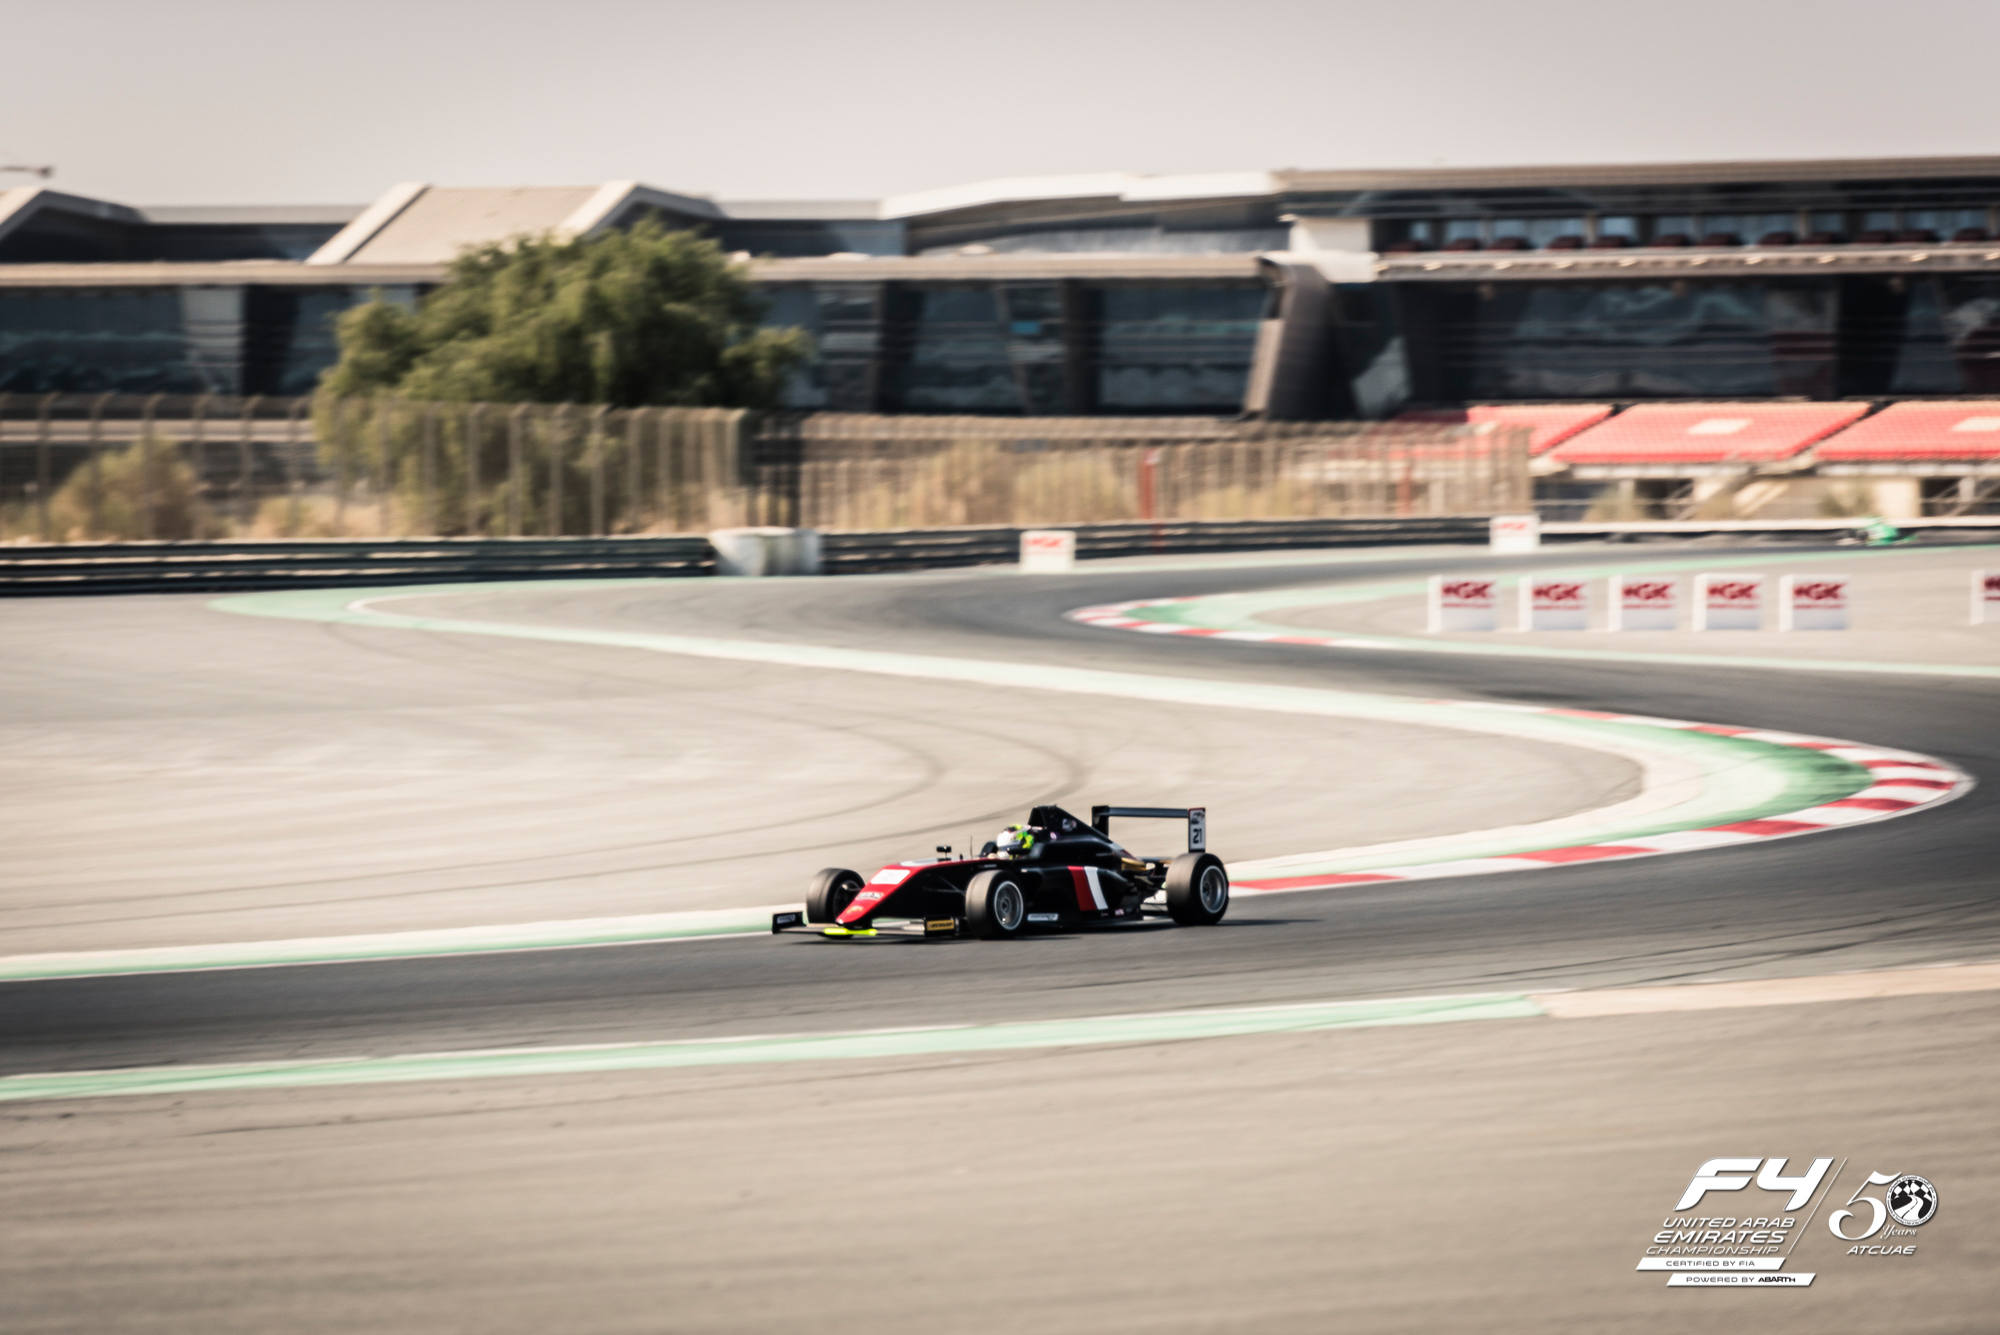 2016 10 30   Racing   Second Round   F4   Dubai    24 Of 34